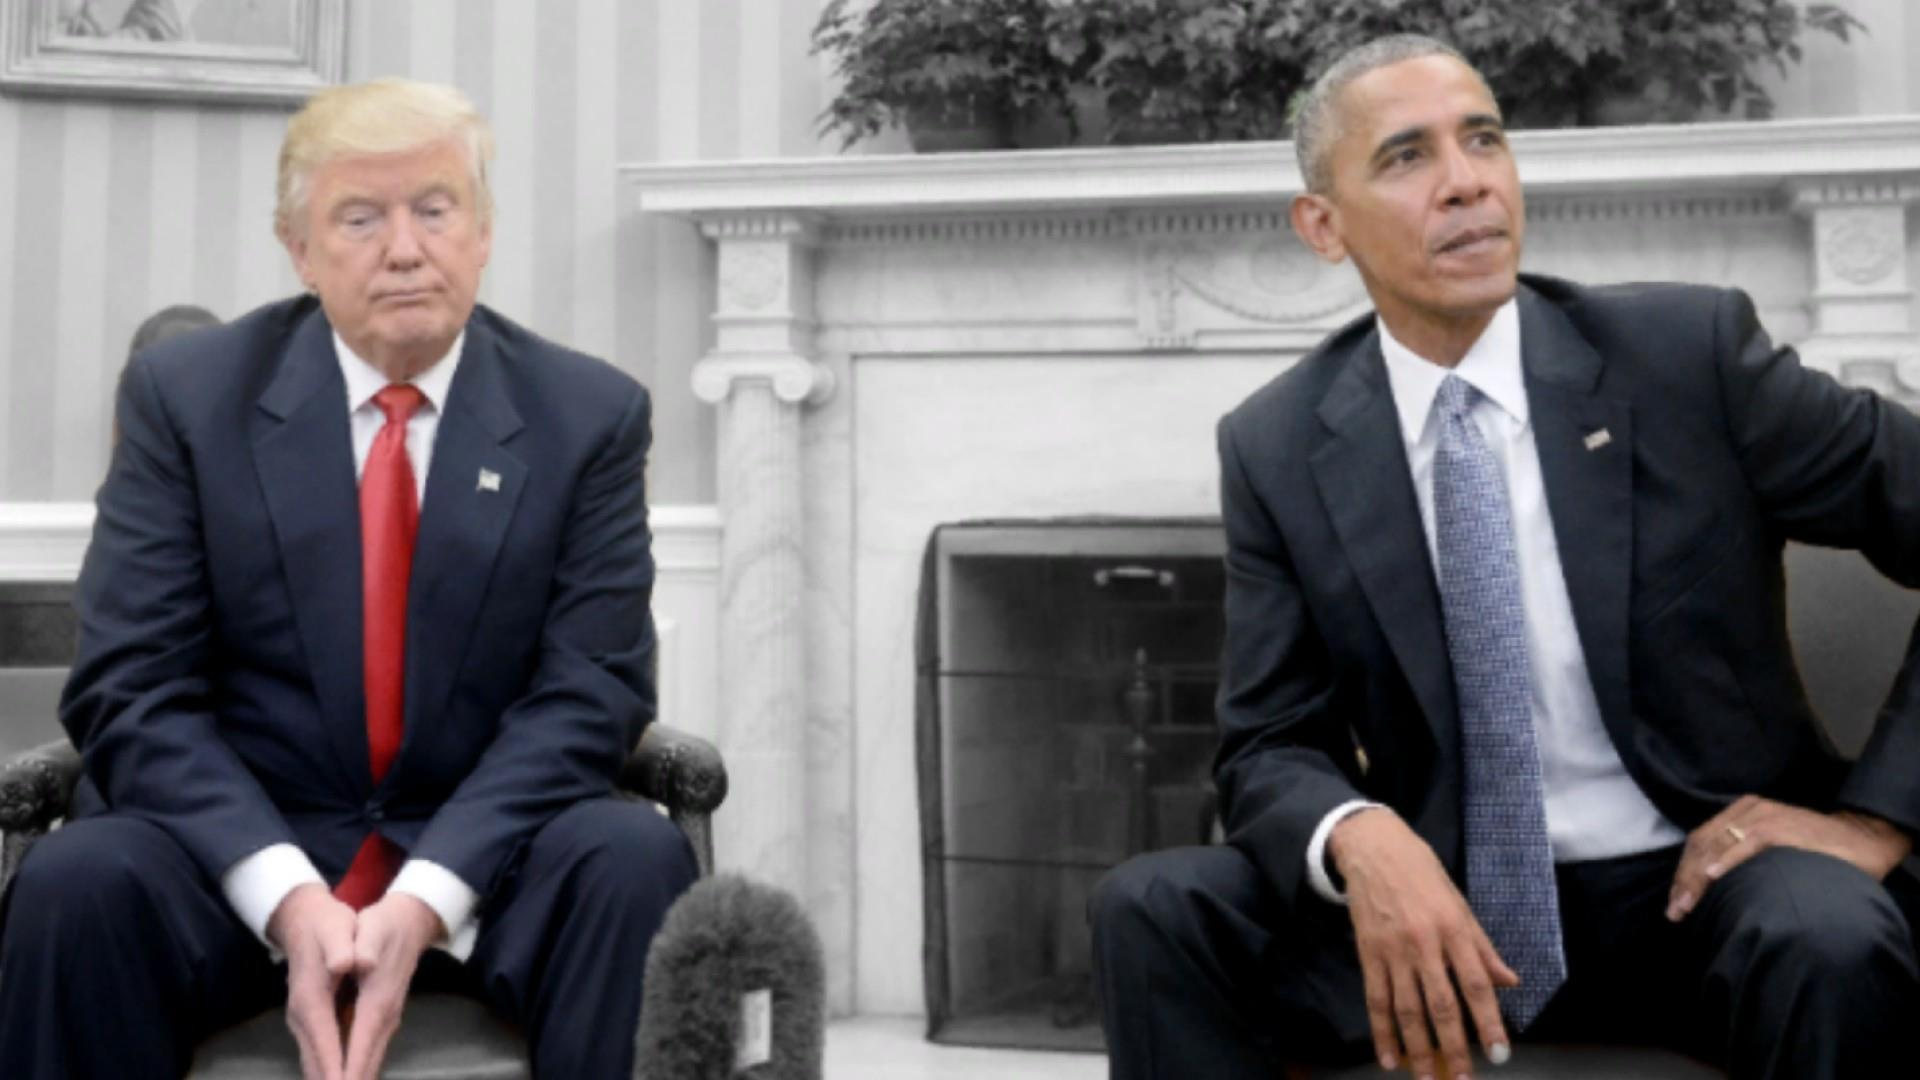 How Trump administration is undoing Obama's foreign policy legacy